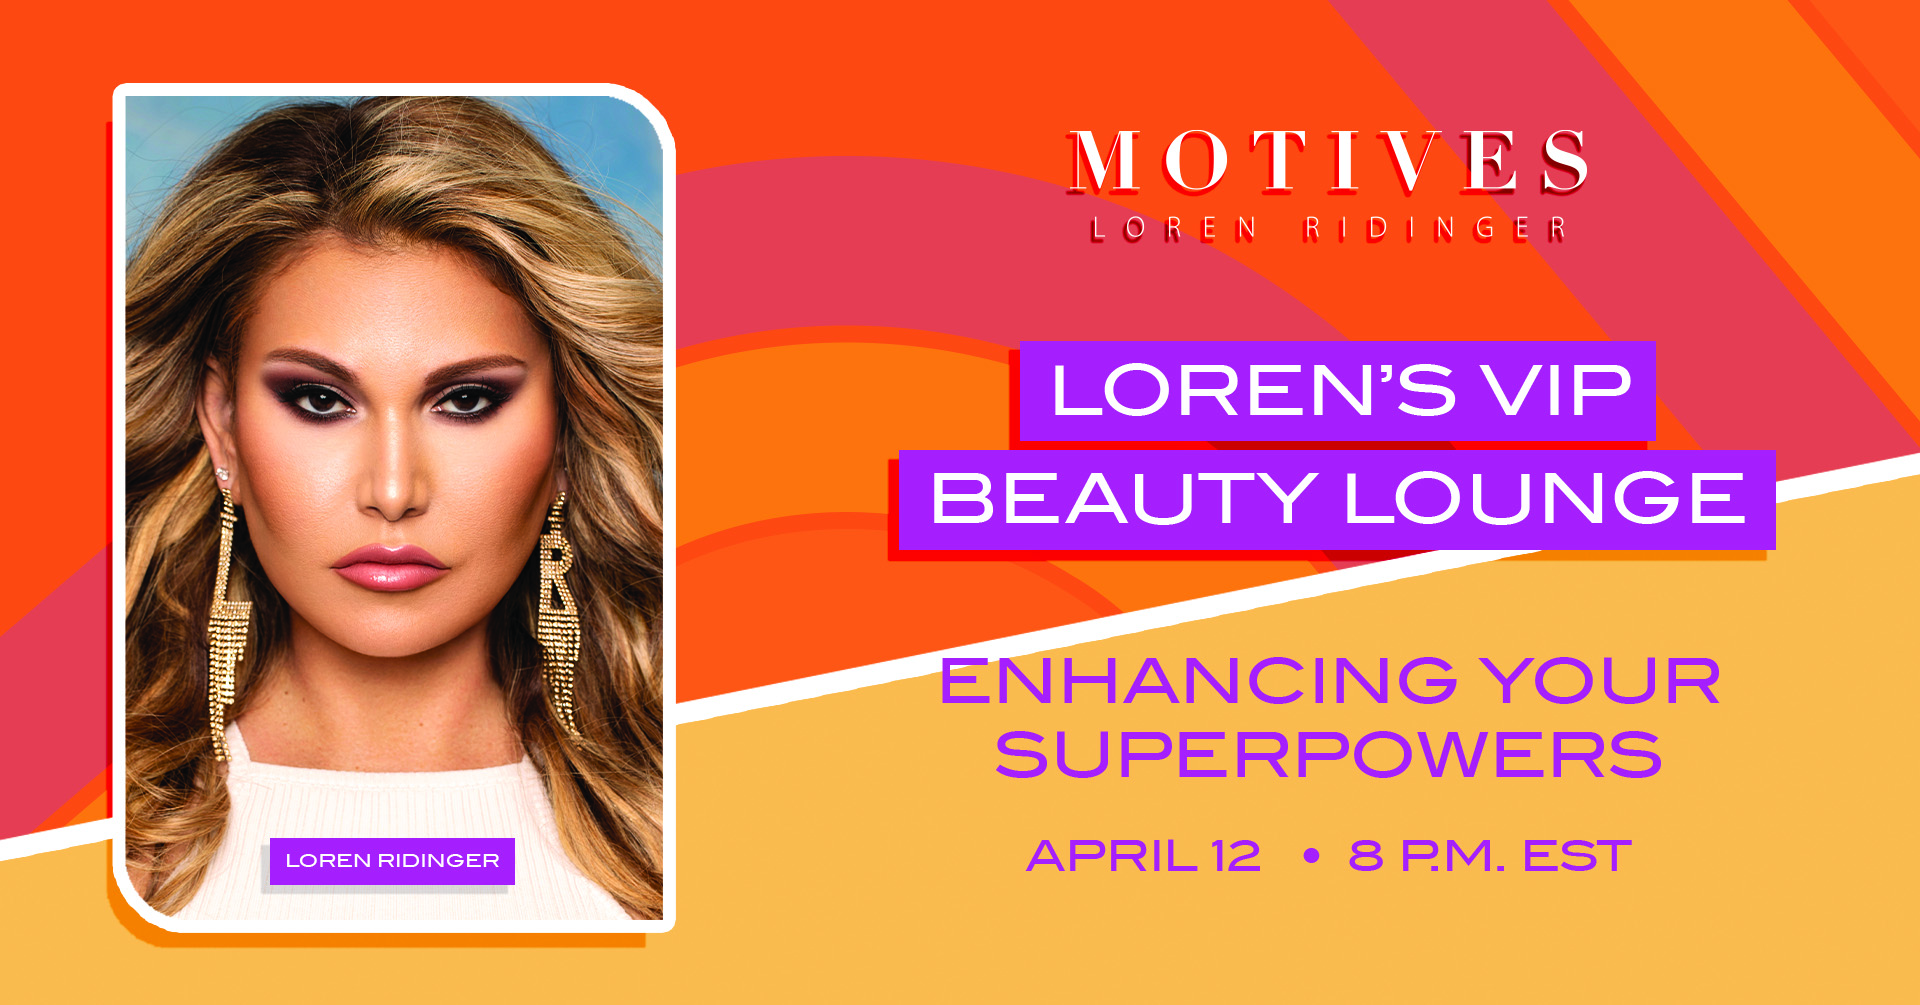 You're Invited! Loren's VIP Beauty Lounge-Enhancing Your Superpowers This Monday